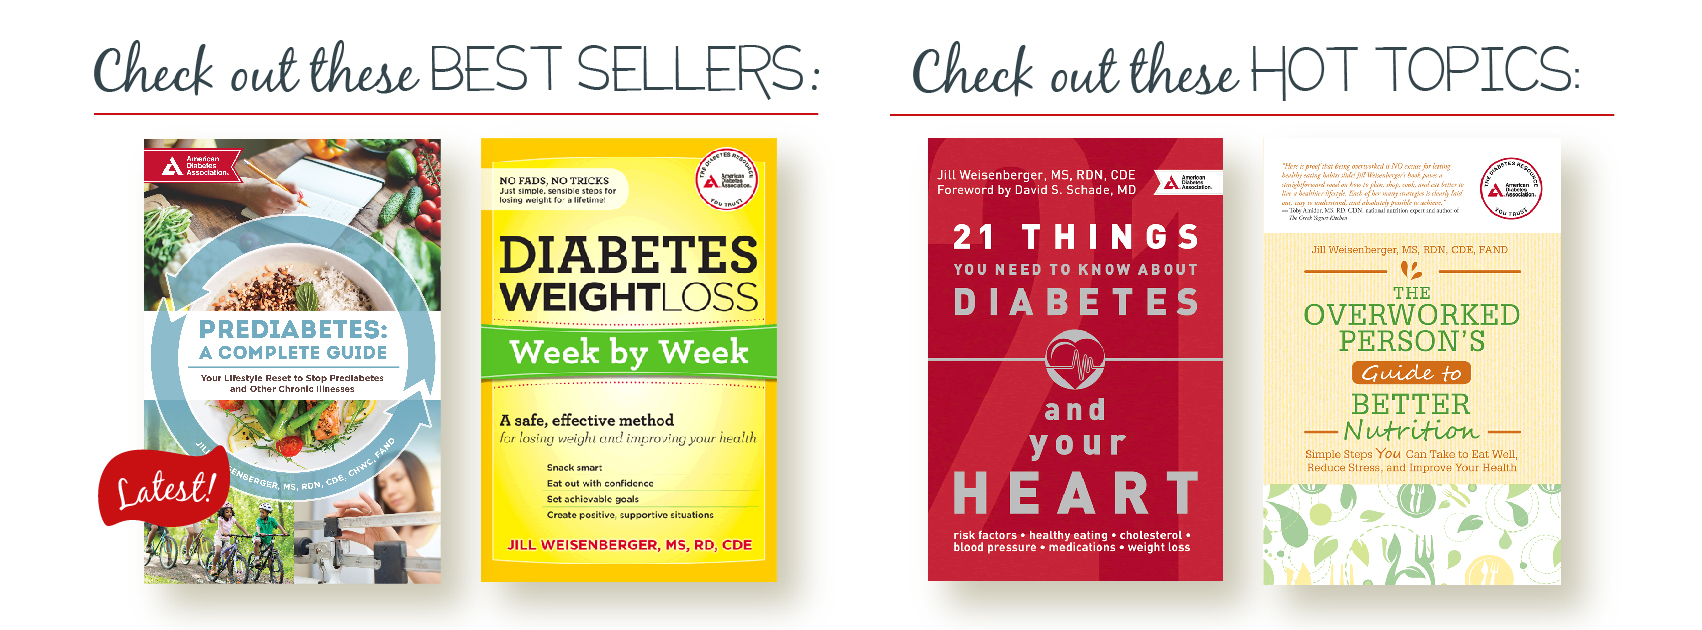 JW_Email ad for books + Best Sellers + Hot topics@2x